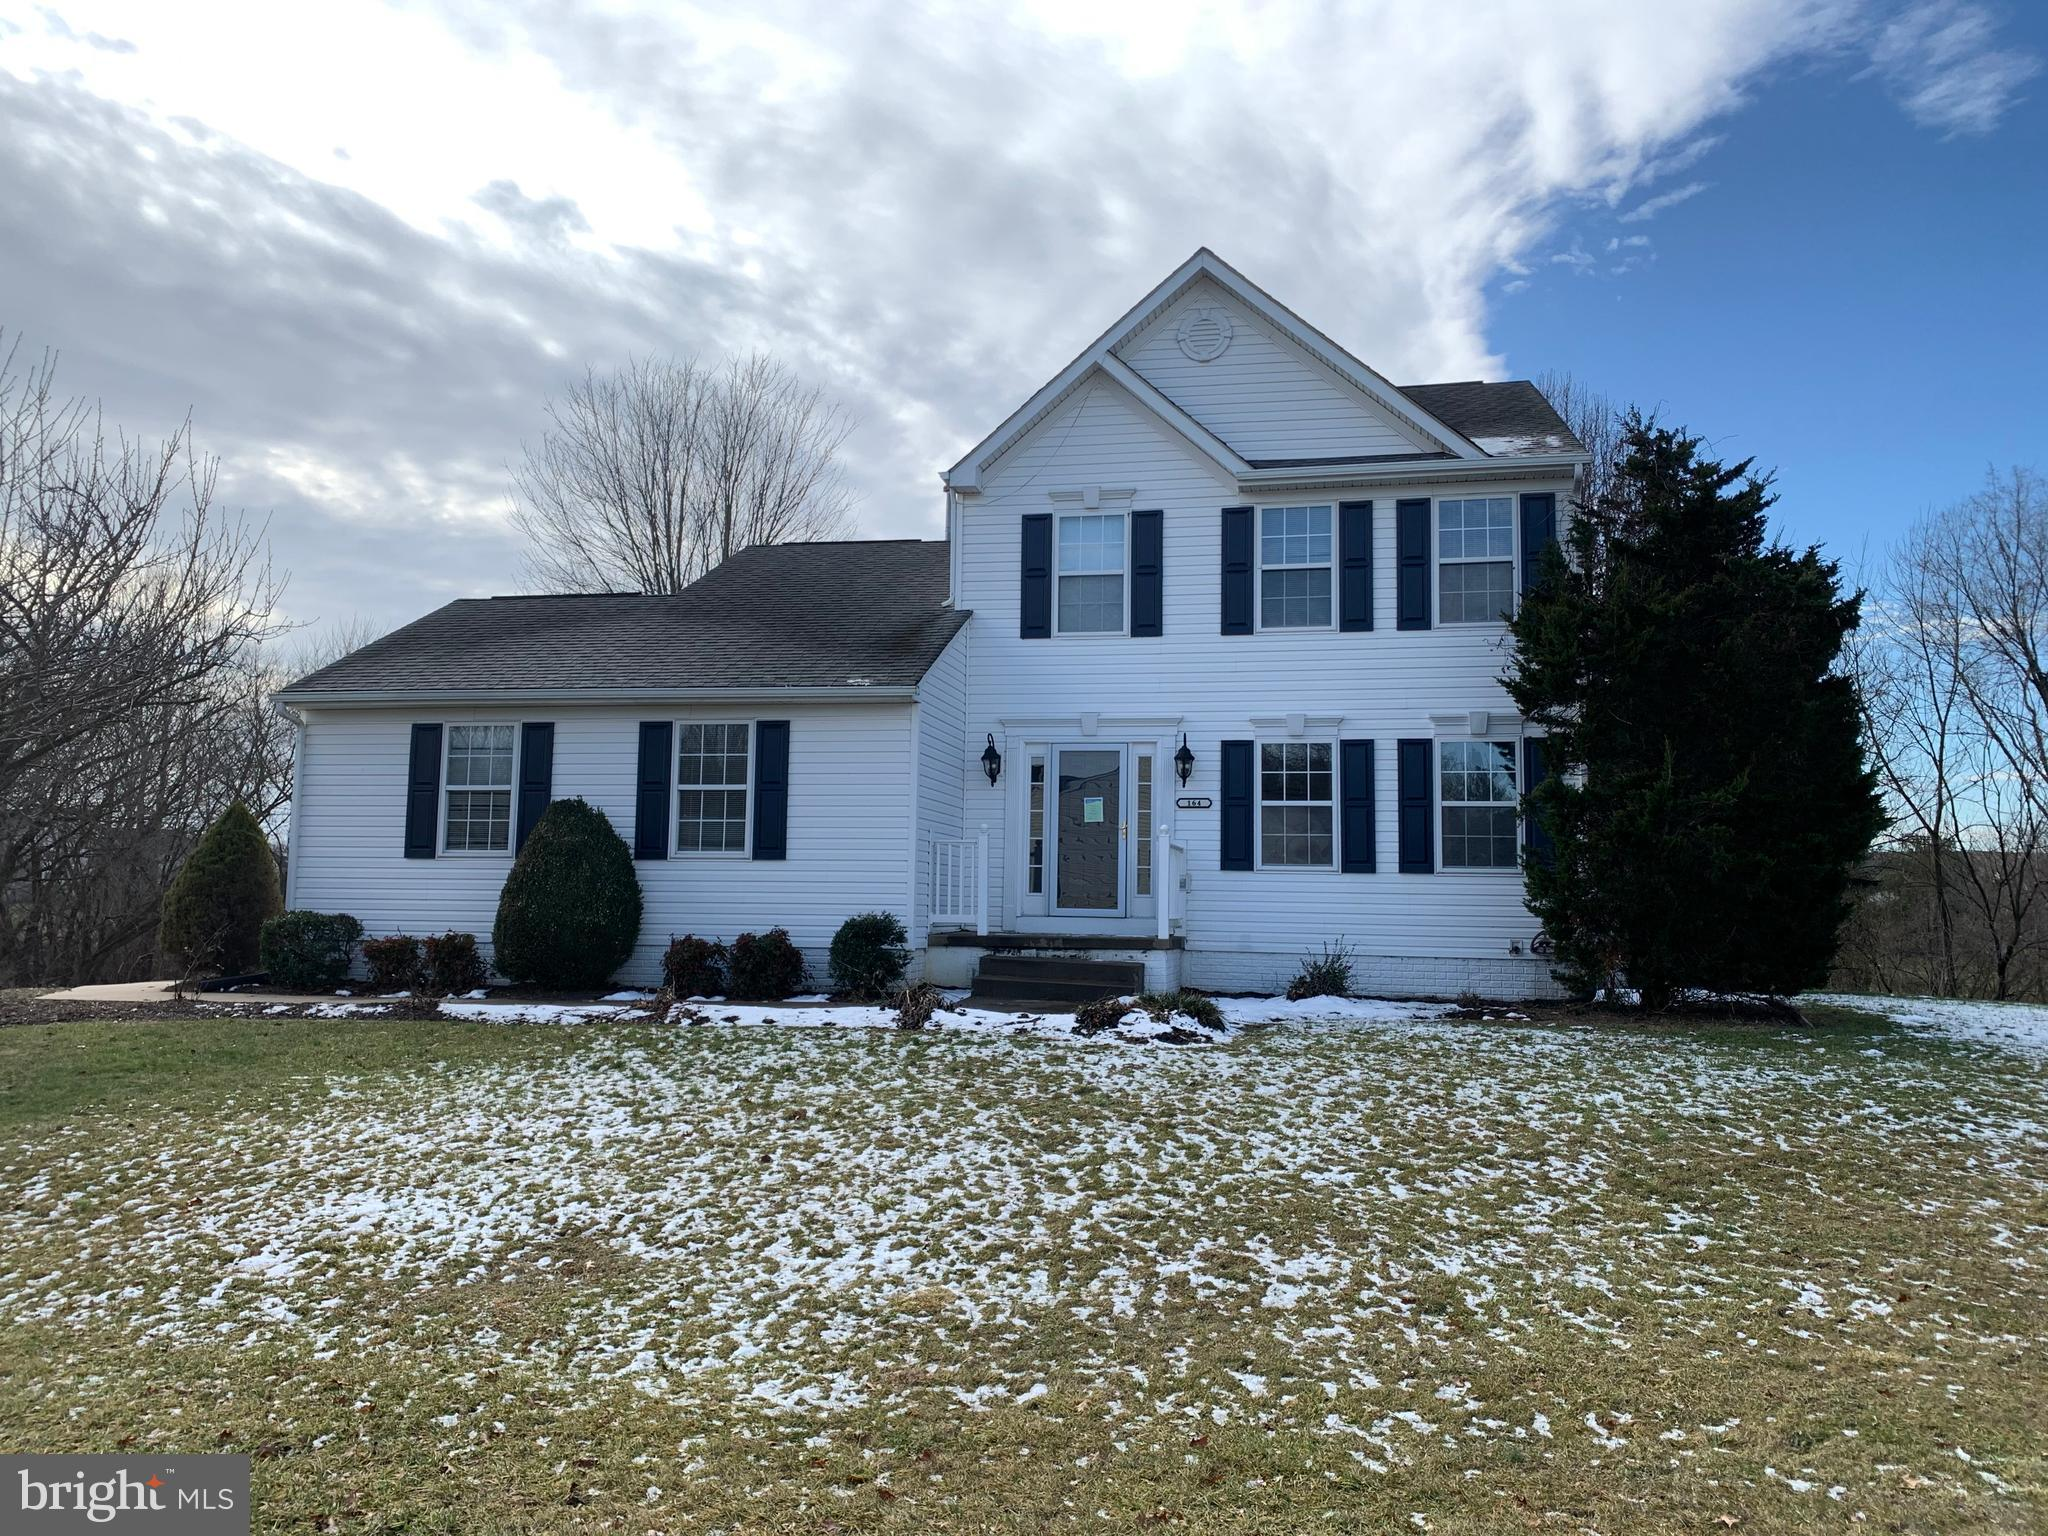 Great location! Colonial style home located in the highly desired Stonebridge SD. Home features fresh paint and new flooring, 3BRs, 3FBs, 1HB, fireplace in the living room, partially finished basement, 2 car garage and small back patio. Home backs to trees with a view of the pond.